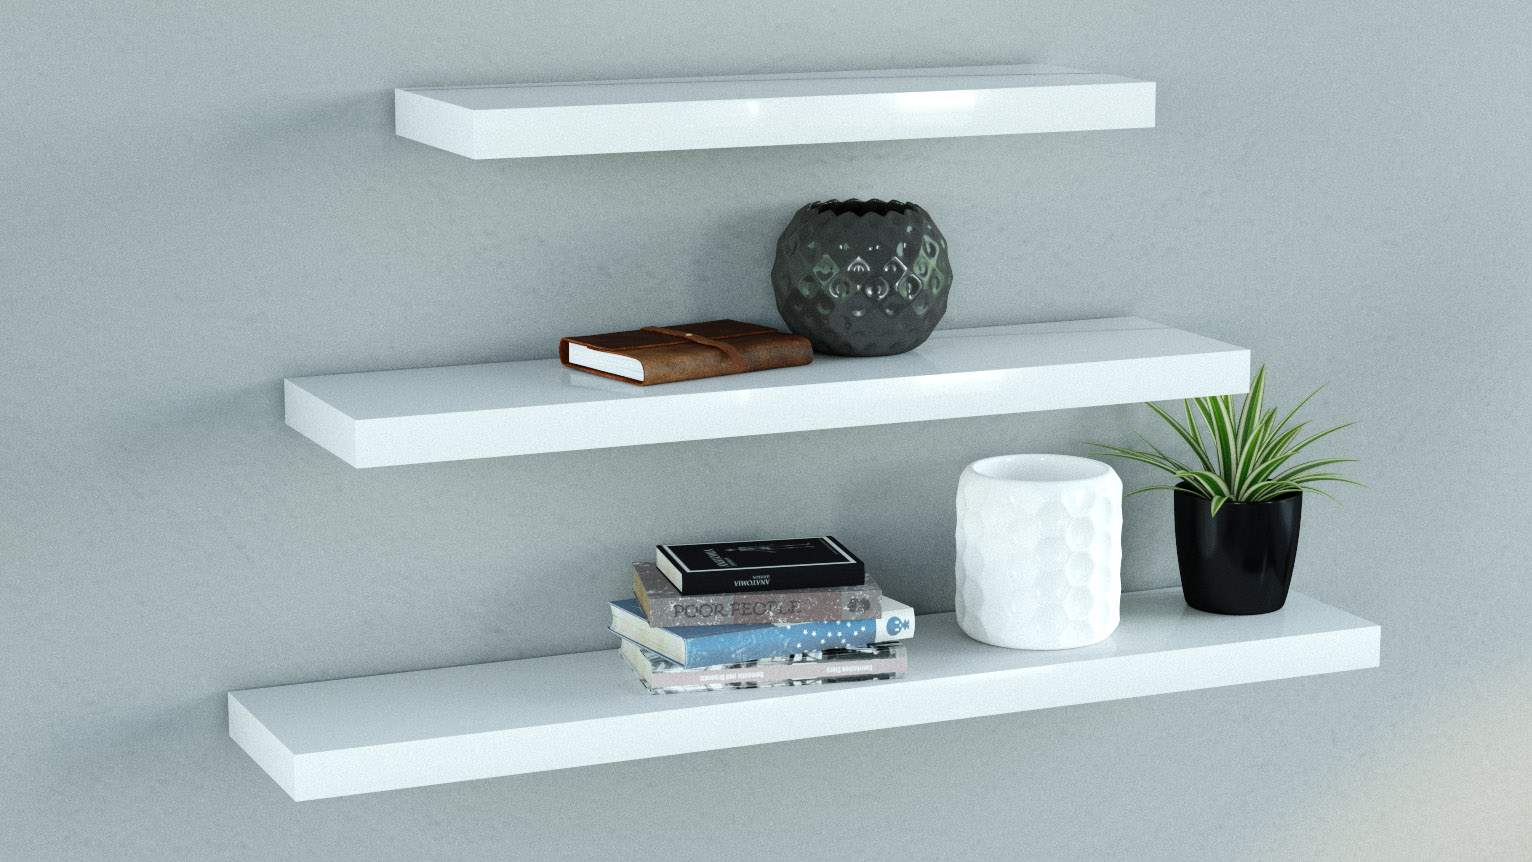 Miraculous Gloss White Floating Shelves Triple Deal Mix Interior Design Ideas Gentotryabchikinfo